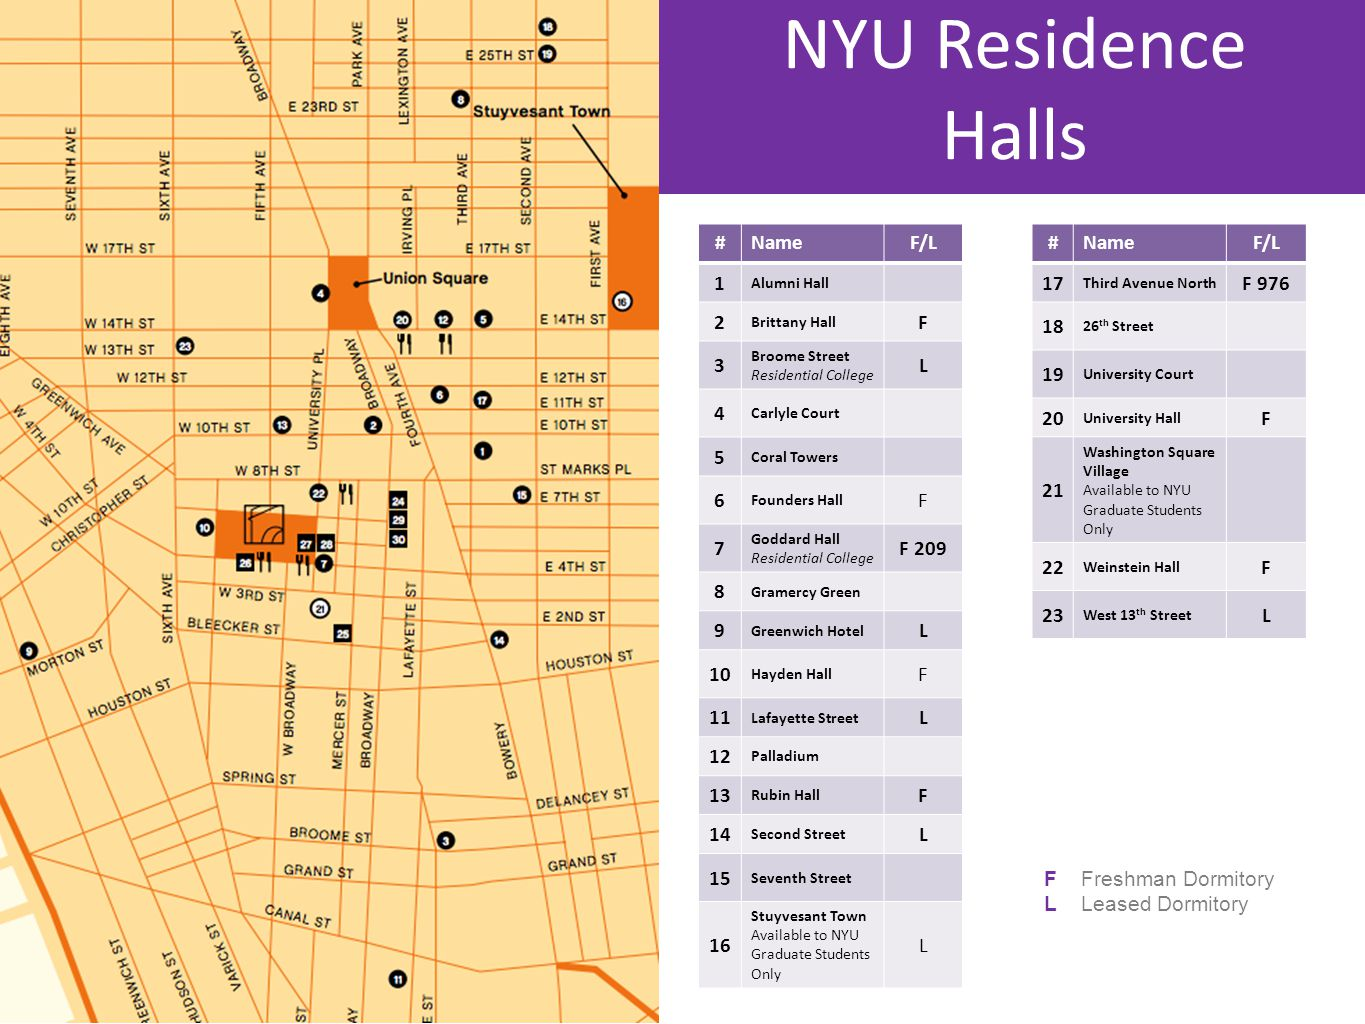 NYU Residence Halls November 2013 #NameF/L 1 Alumni Hall 2 Brittany Hall F 3 Broome Street Residential College L 4 Carlyle Court 5 Coral Towers 6 Founders Hall F 7 Goddard Hall Residential College F 209 8 Gramercy Green 9 Greenwich Hotel L 10 Hayden Hall F 11 Lafayette Street L 12 Palladium 13 Rubin Hall F 14 Second Street L 15 Seventh Street 16 Stuyvesant Town Available to NYU Graduate Students Only L #NameF/L 17 Third Avenue North F 976 18 26 th Street 19 University Court 20 University Hall F 21 Washington Square Village Available to NYU Graduate Students Only 22 Weinstein Hall F 23 West 13 th Street L F Freshman Dormitory L Leased Dormitory